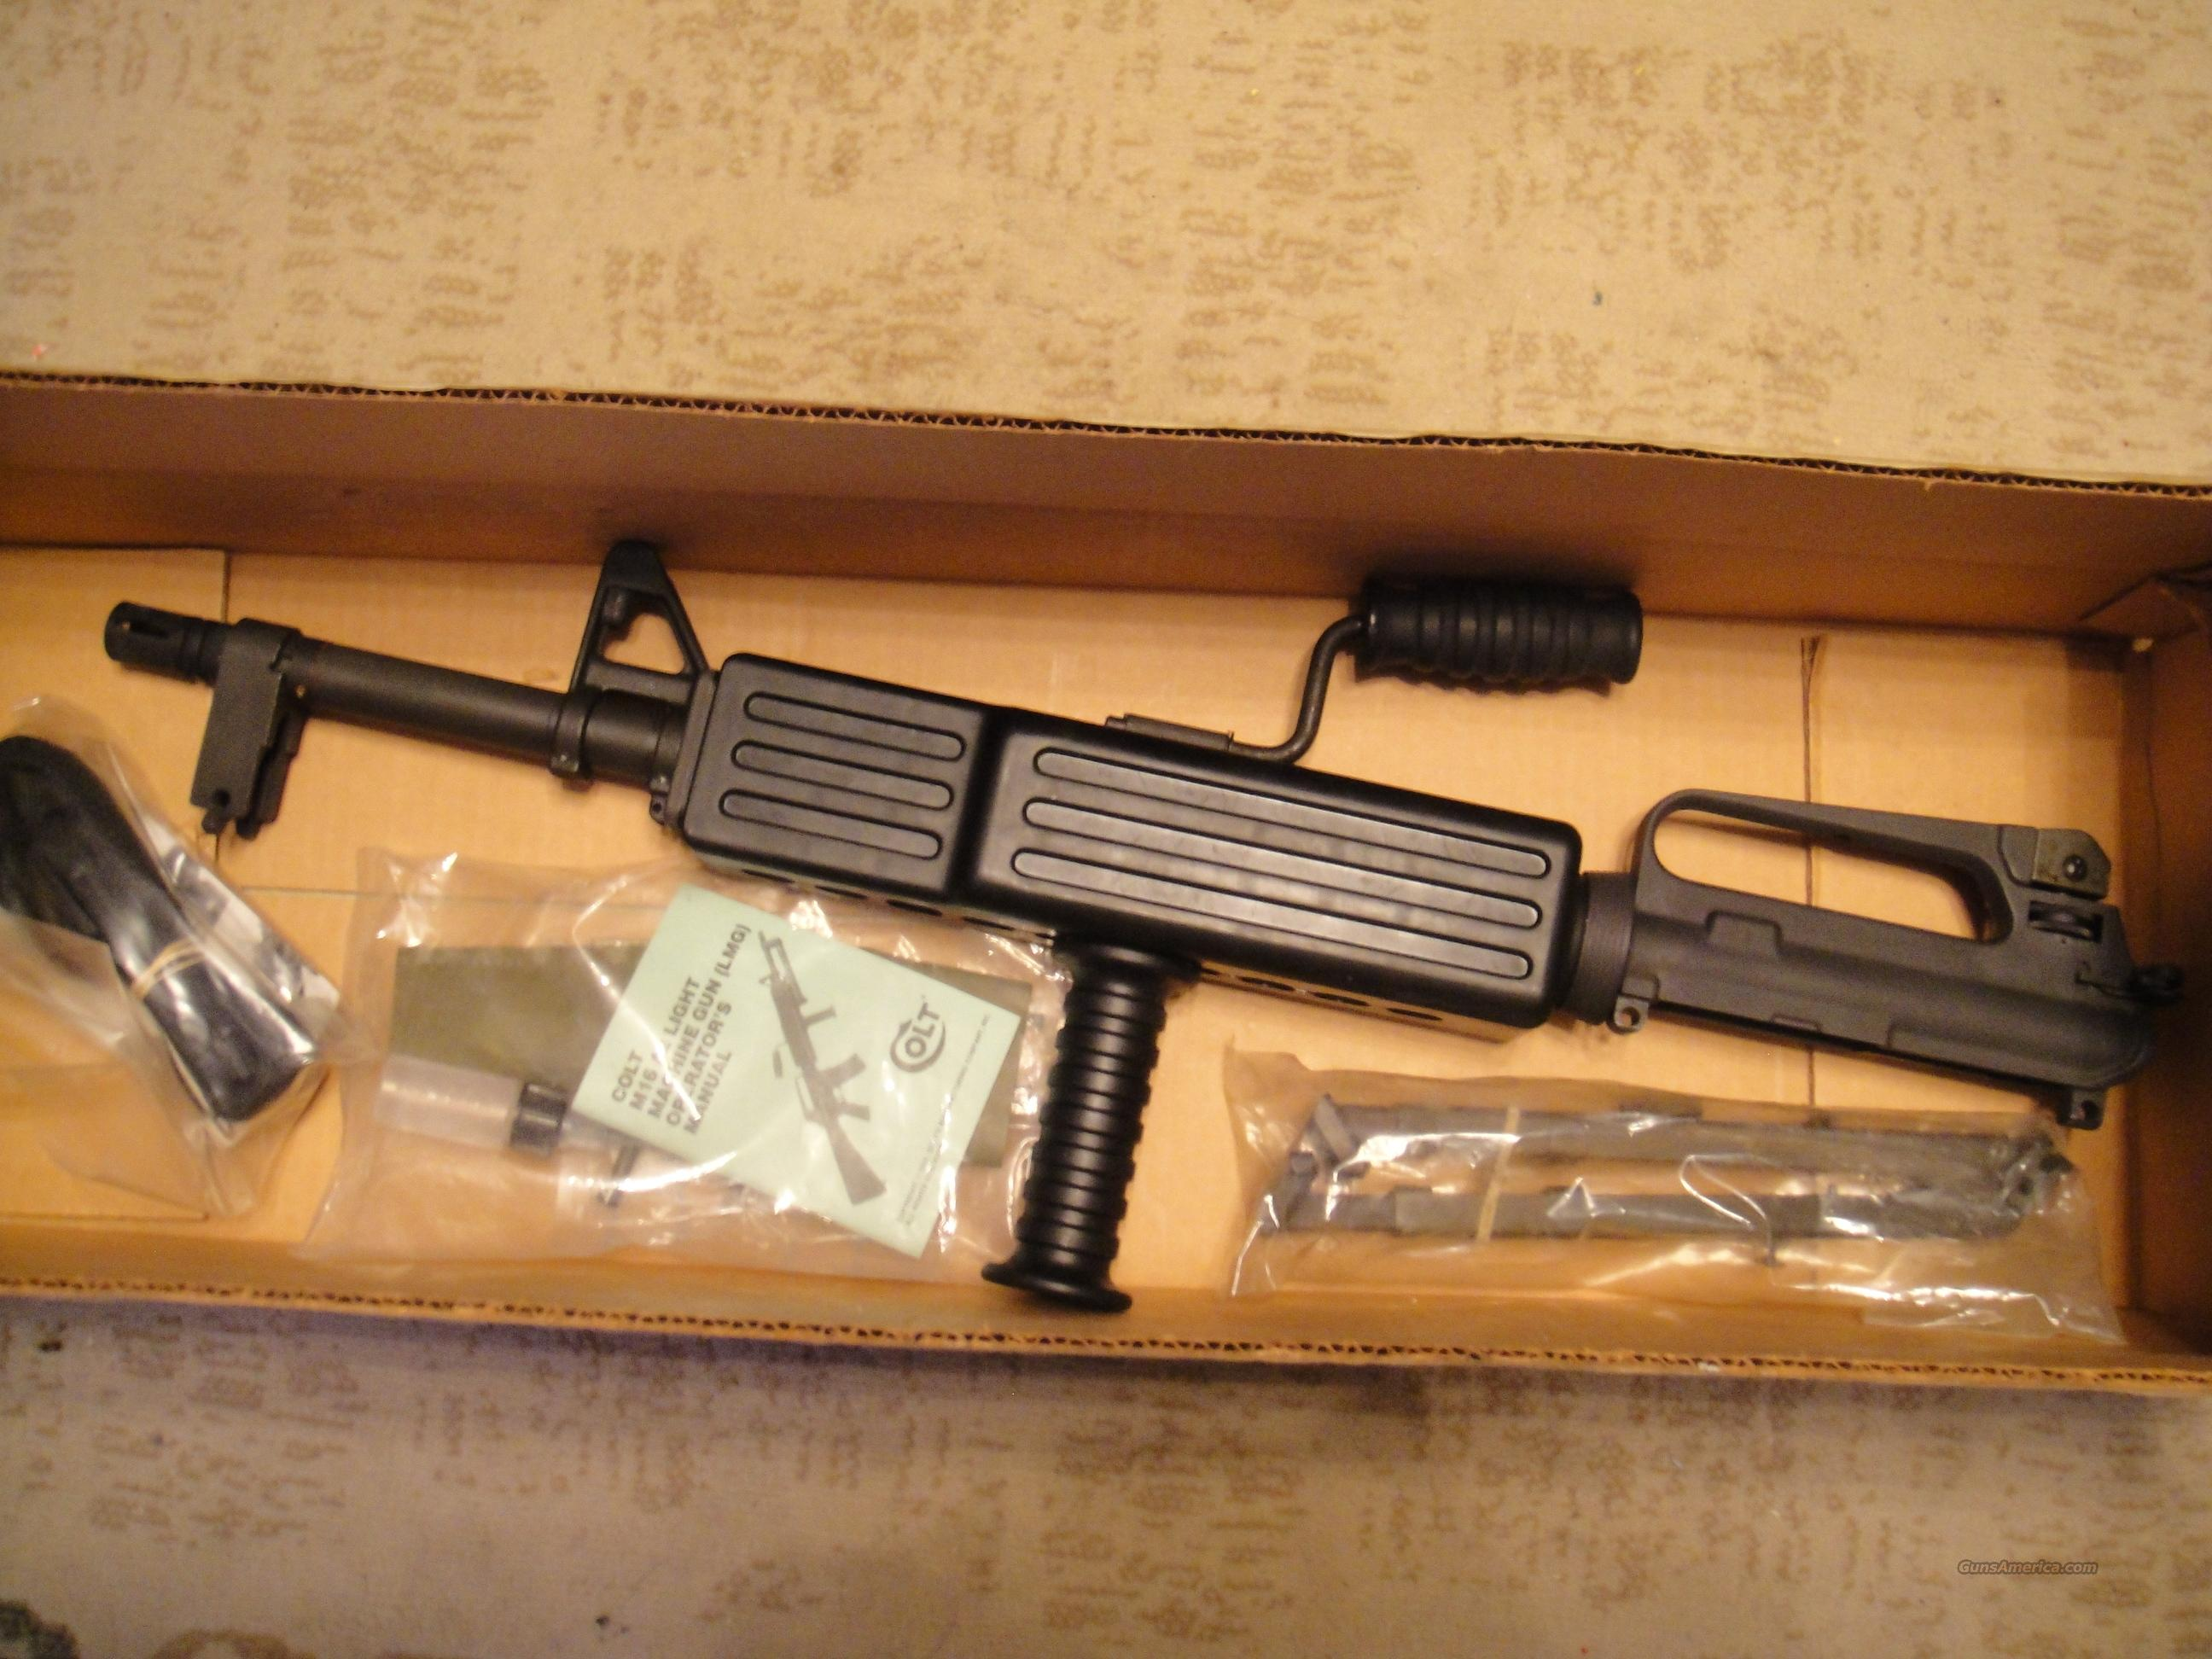 COLT M16 A2 LIGHT MACHINE GUN UPPER  Guns > Rifles > Colt Military/Tactical Rifles